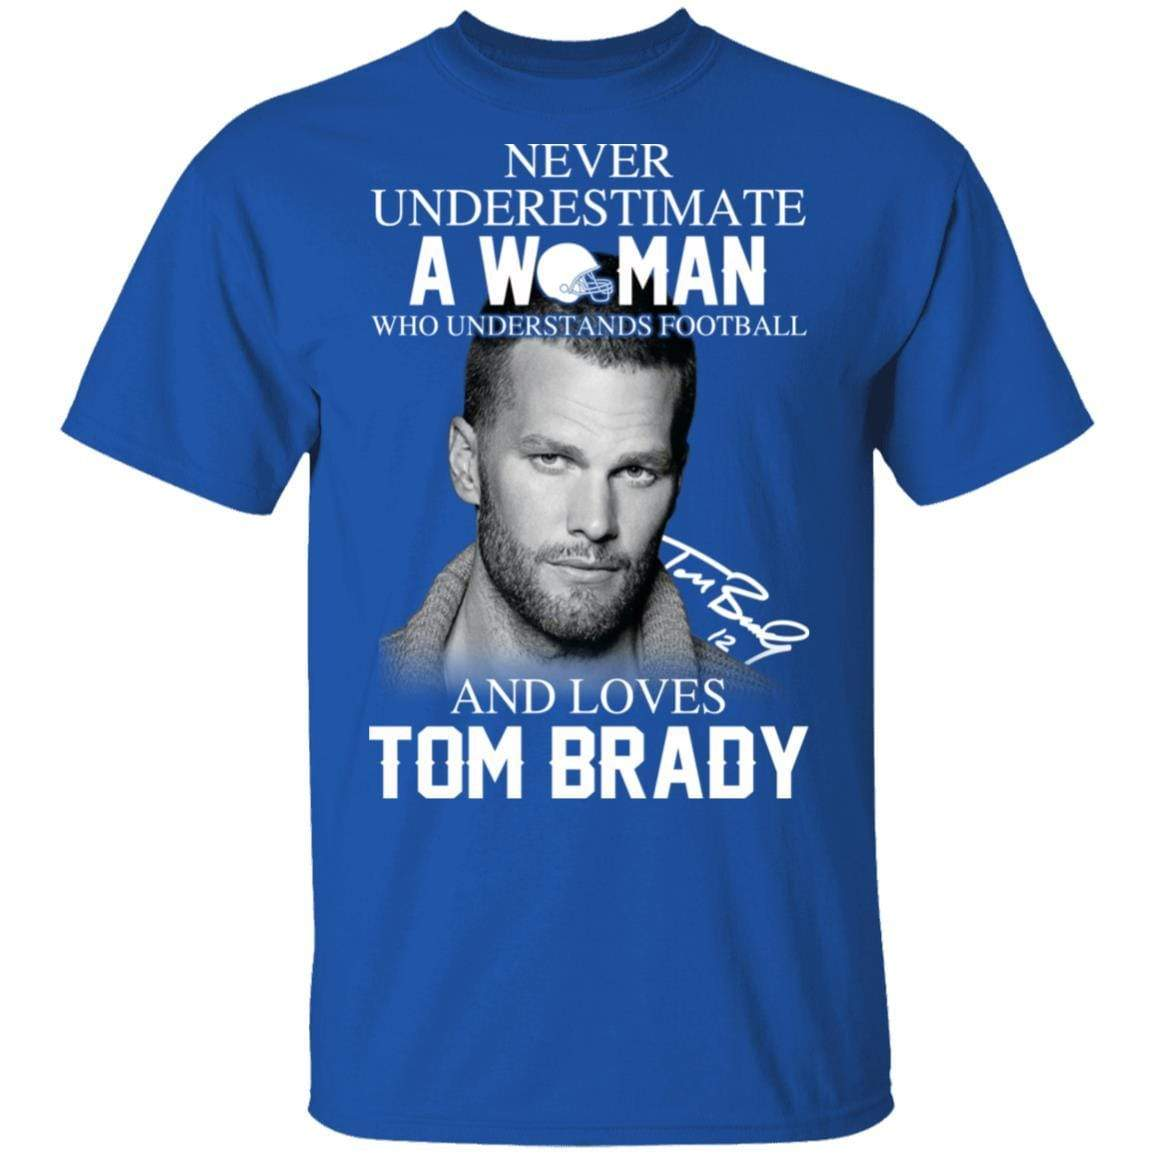 Never Underestimate A Woman Who Understands Football And Loves Tom Brady T-Shirts, Hoodies 1049-9971-86894527-48286 - Tee Ript